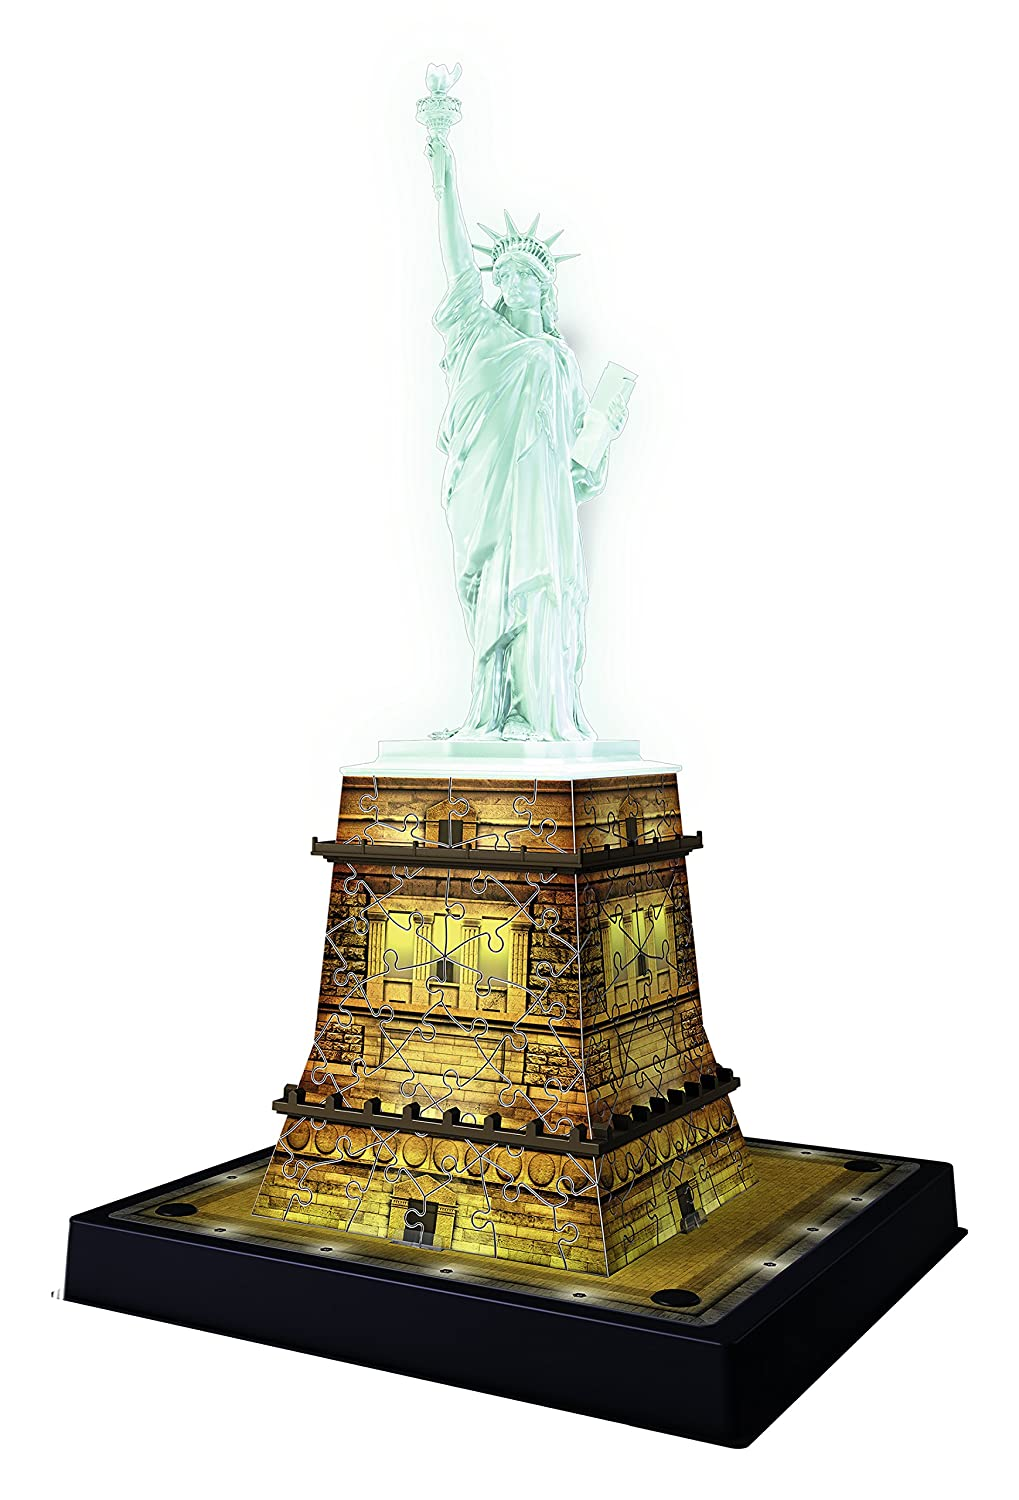 Ravensburger Statue of Liberty - Night Edition, 108pc 3D Jigsaw Puzzle® 12596